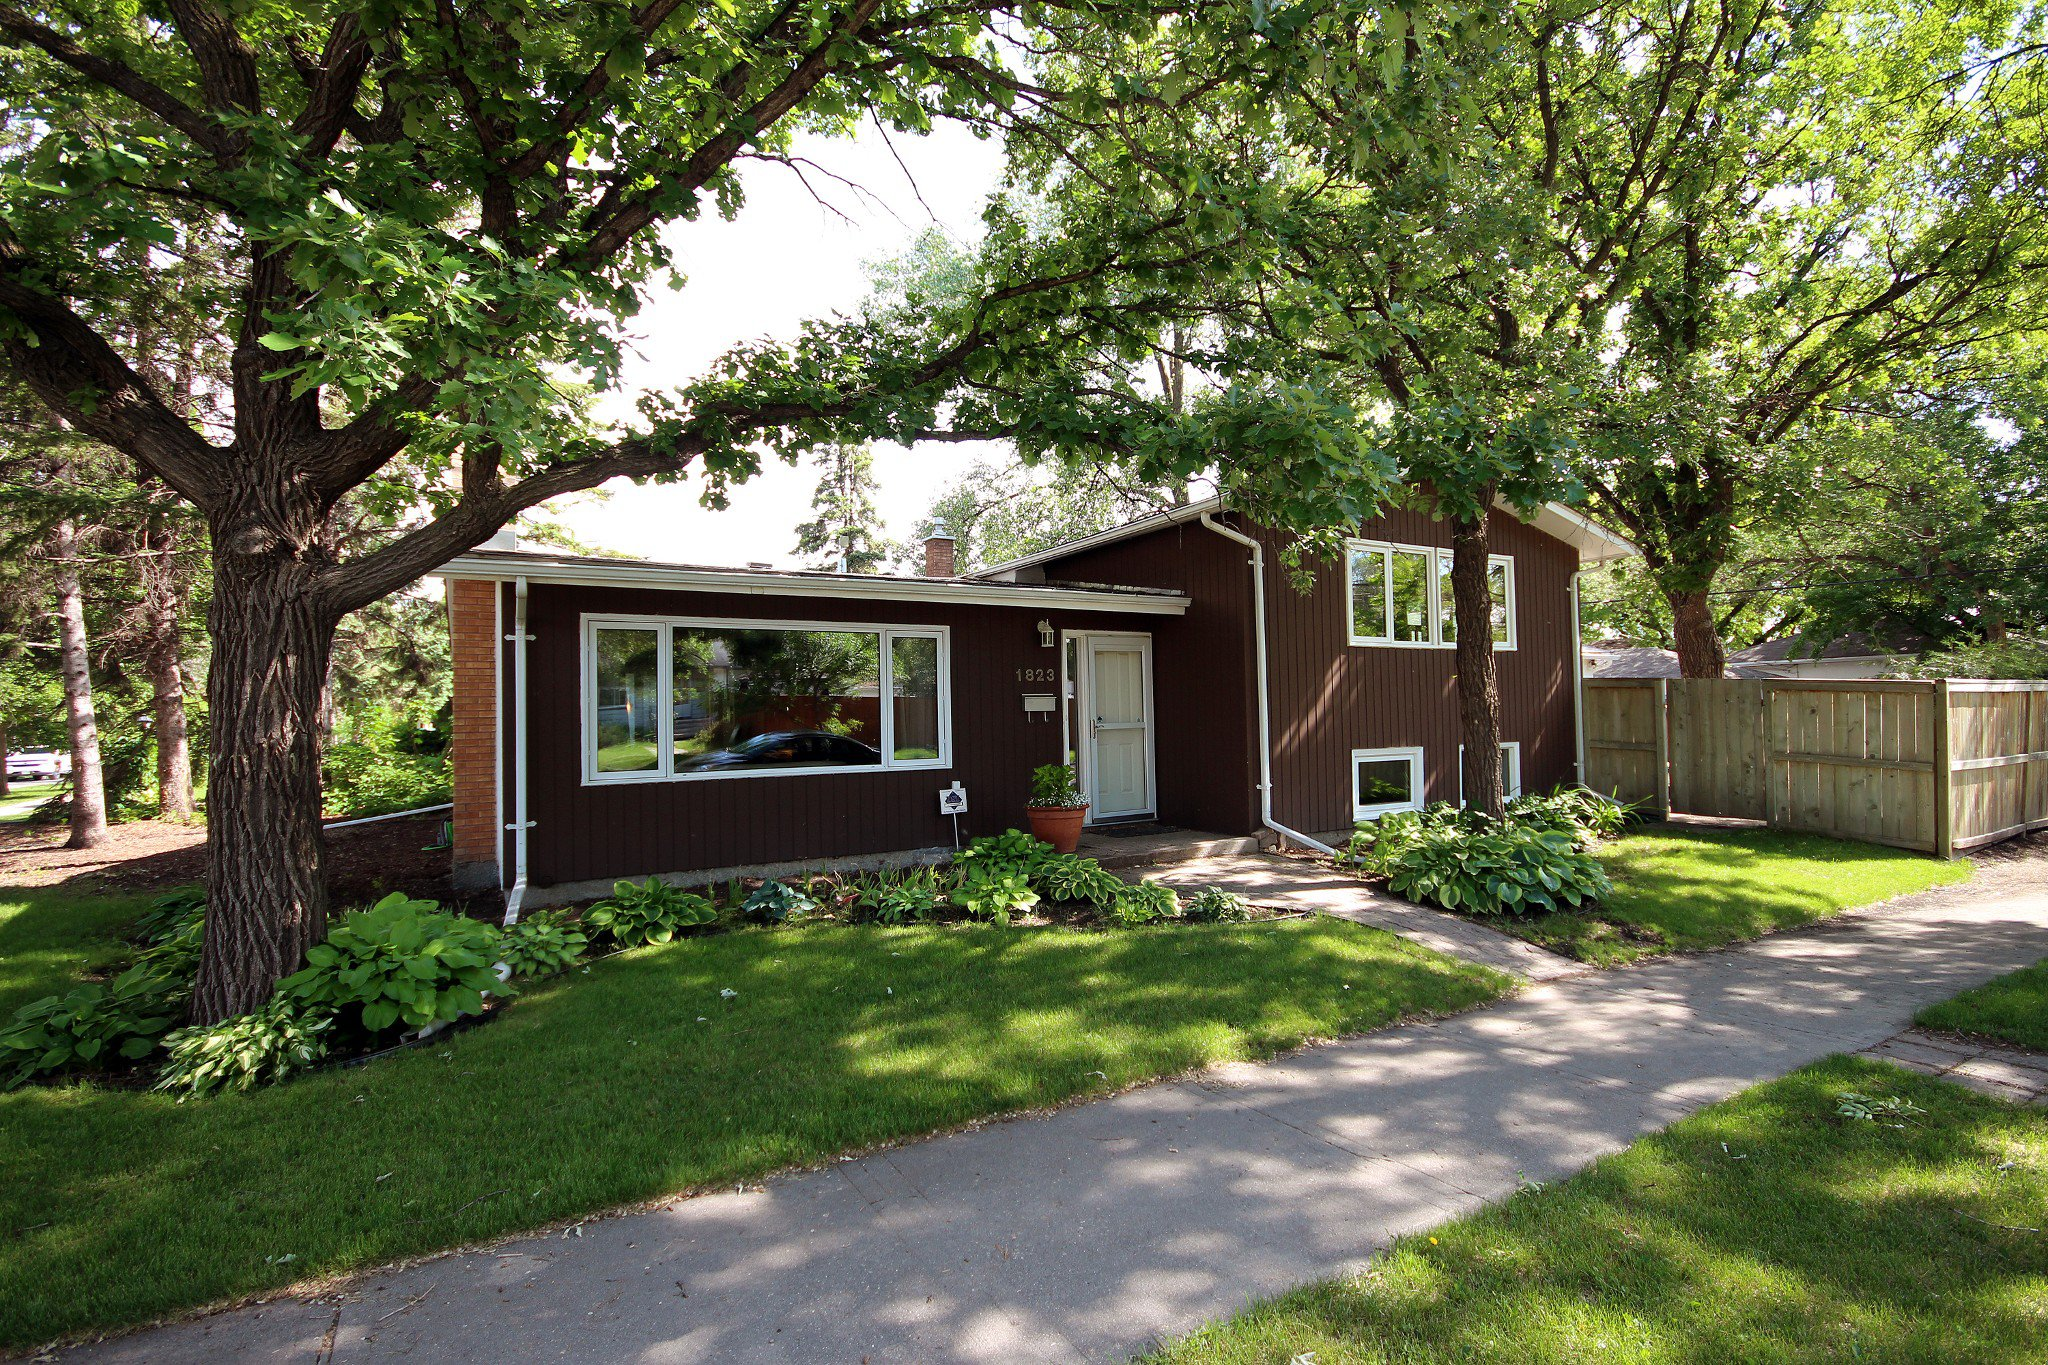 Main Photo: 1823 Mathers Avenue in Winnipeg: River Heights Residential for sale (1D)  : MLS®# 1816557